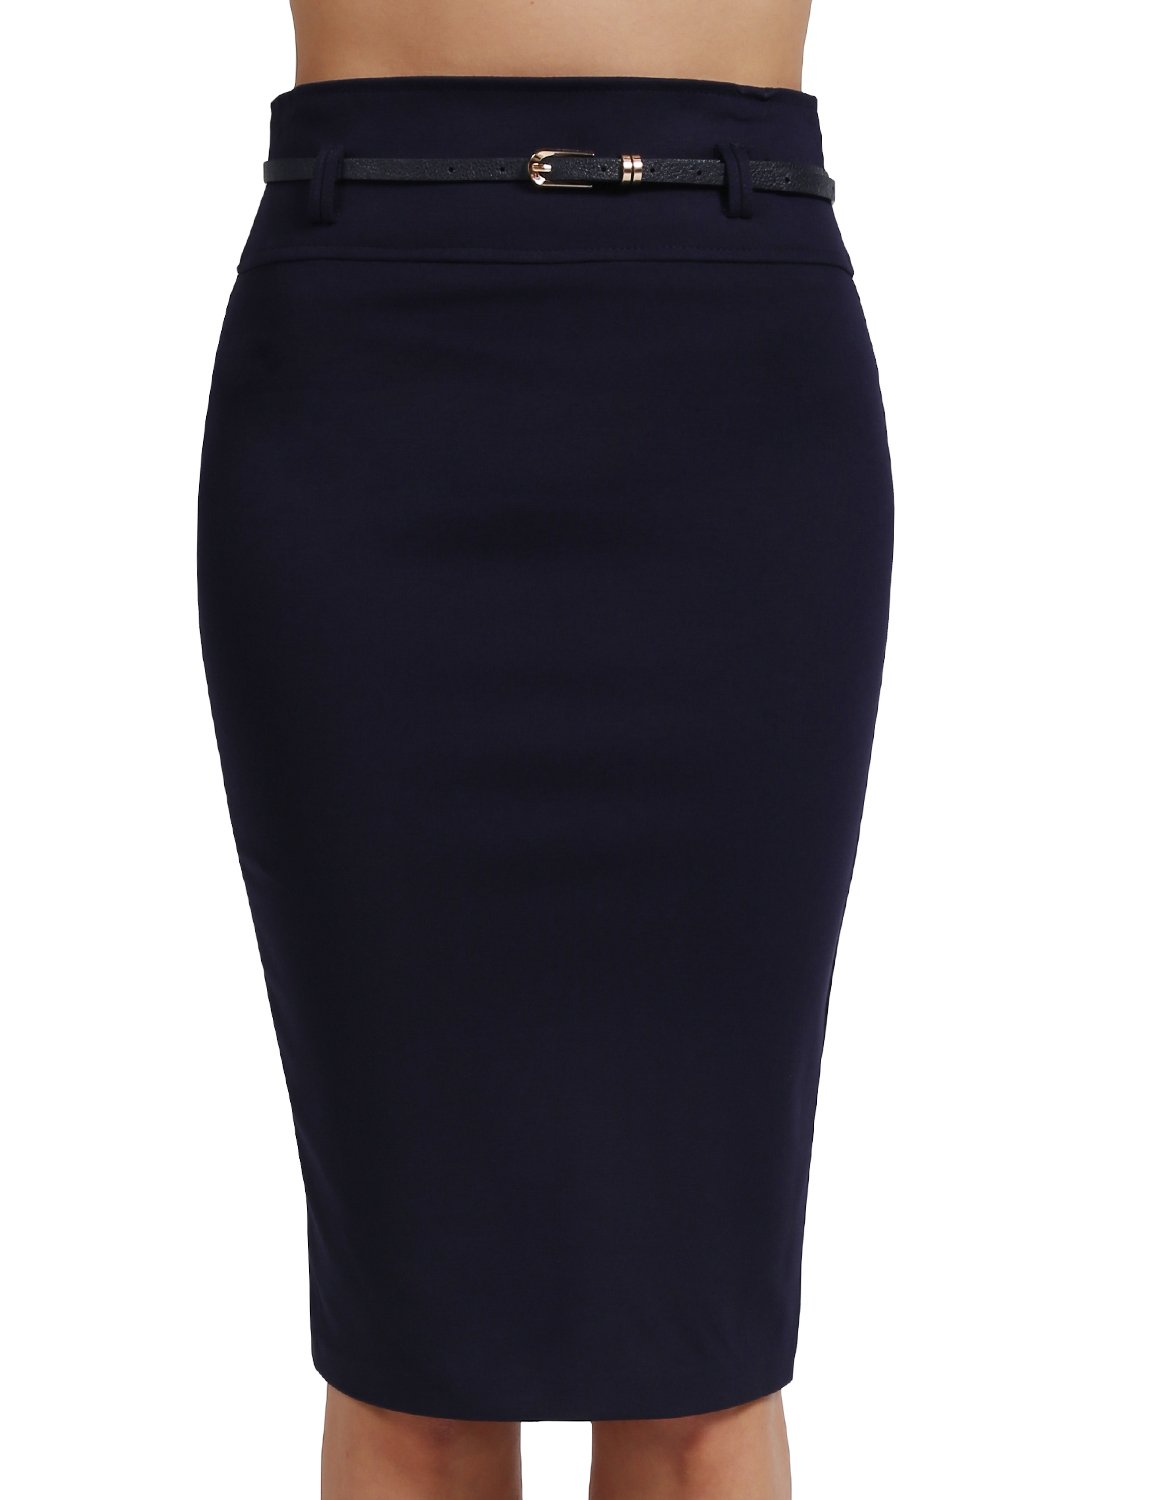 J. LOVNY Womens Simple Knee Length Work Office Pencil Skirts with Belt